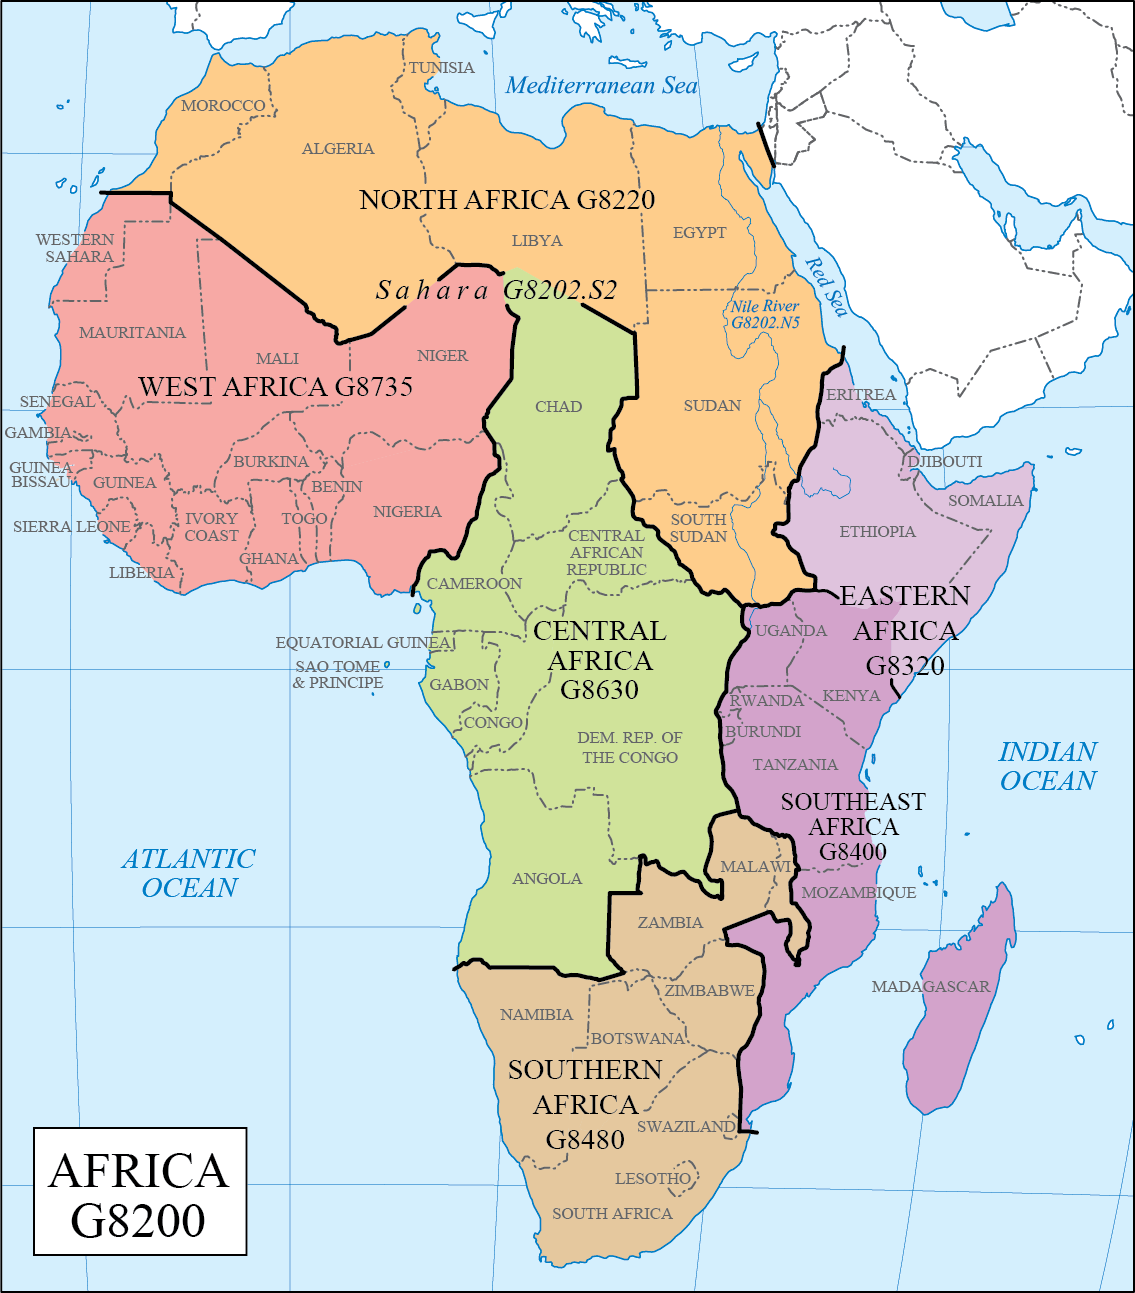 North And South Africa Map Africa regions | Africa map, Africa, African map